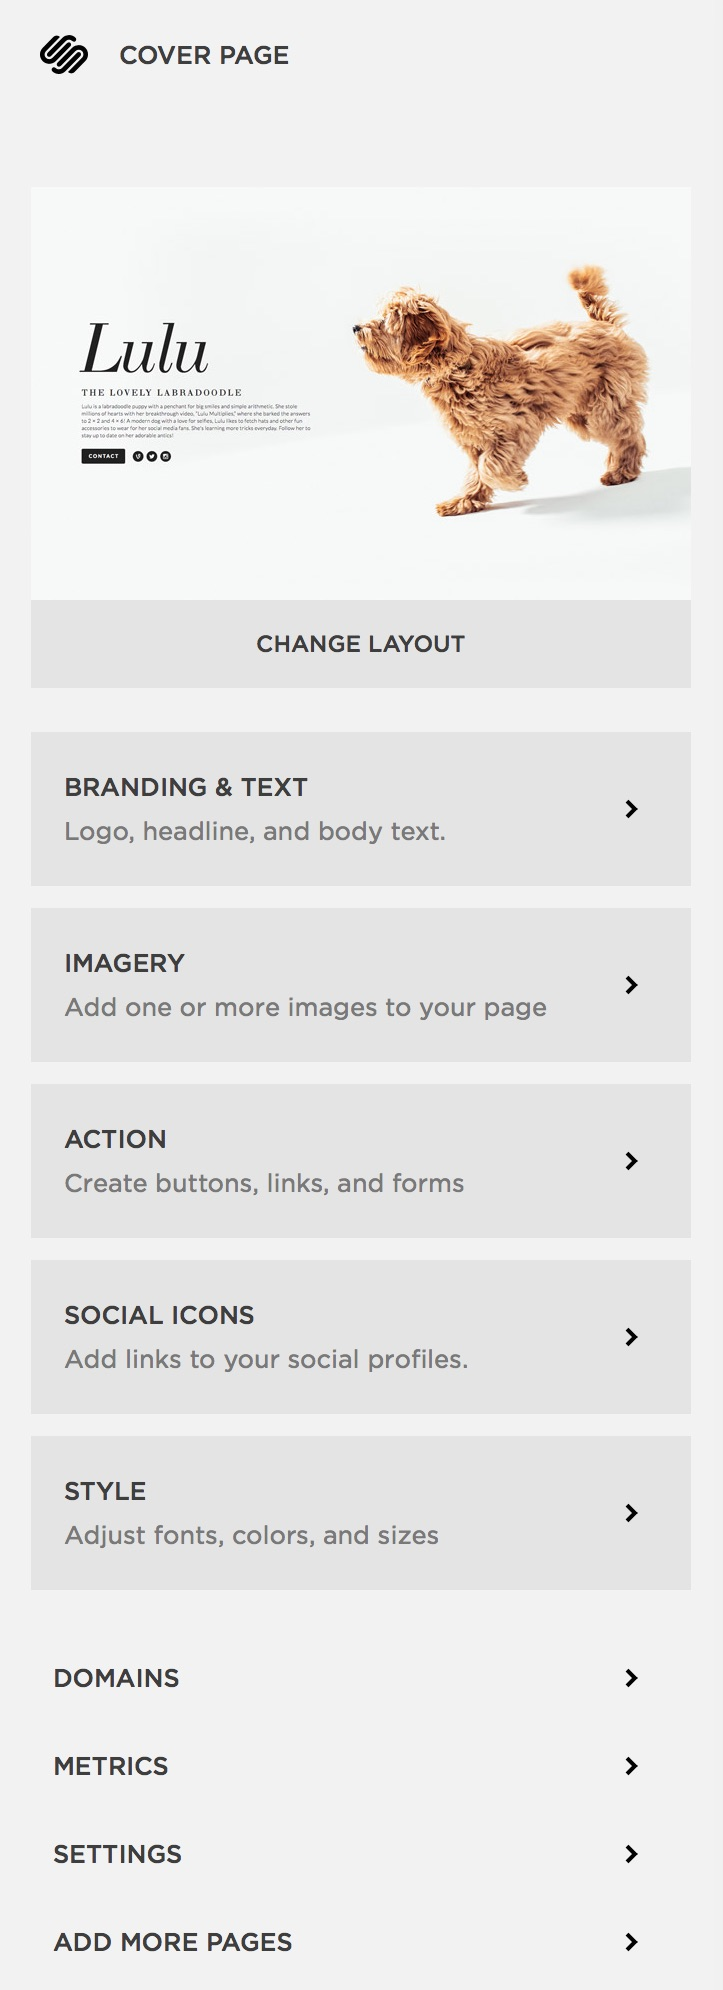 Squarespace Interface Changes New Templates Prices Using My